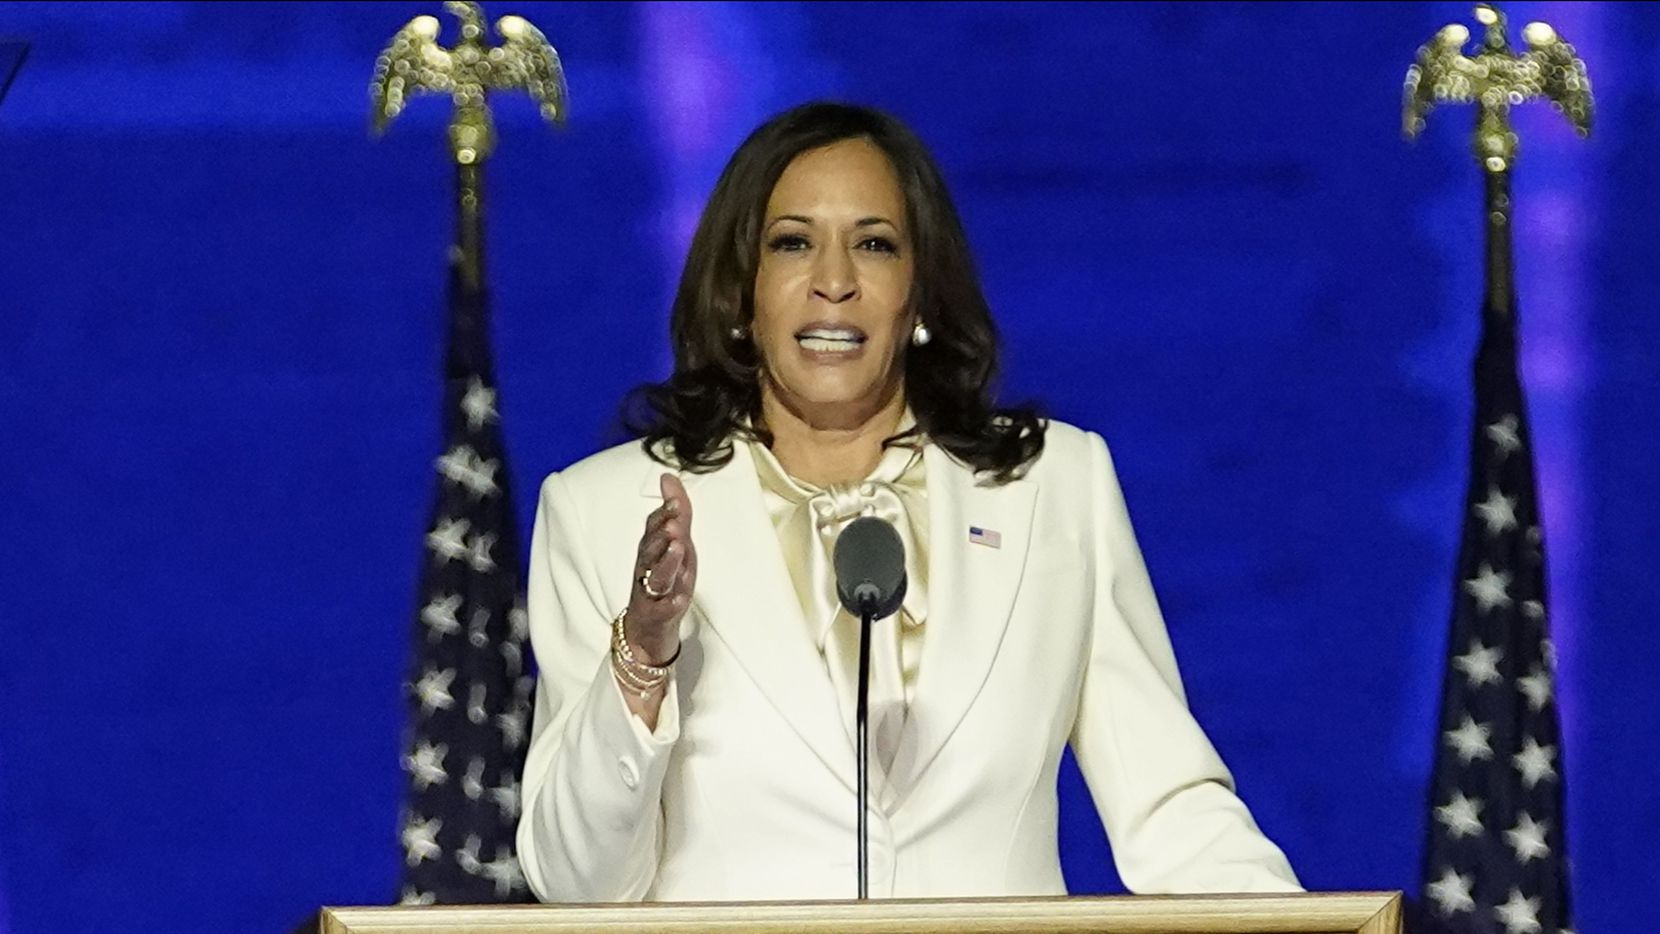 Vice President-elect Kamala Harris delivered remarks in Wilmington, Del., on Nov. 7.